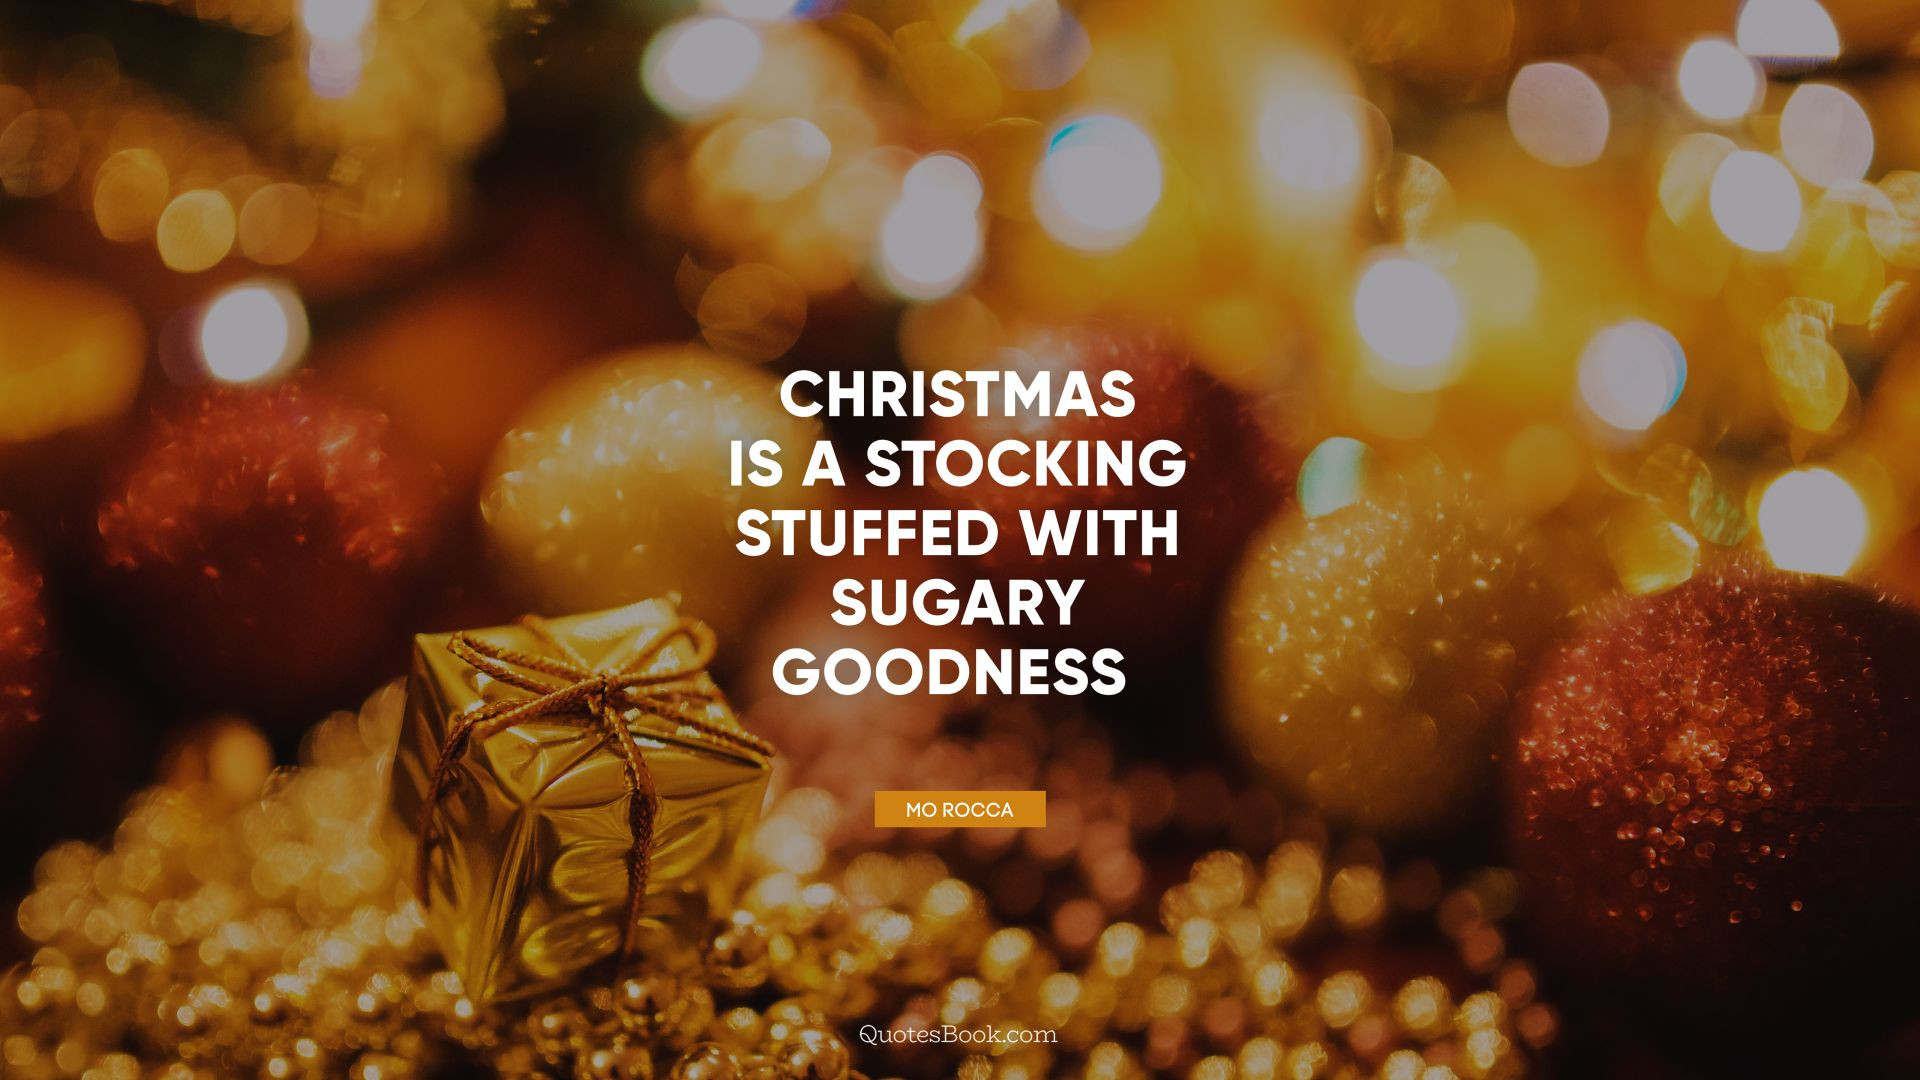 Christmas is a stocking stuffed with sugary goodness. - Quote by Mo Rocca